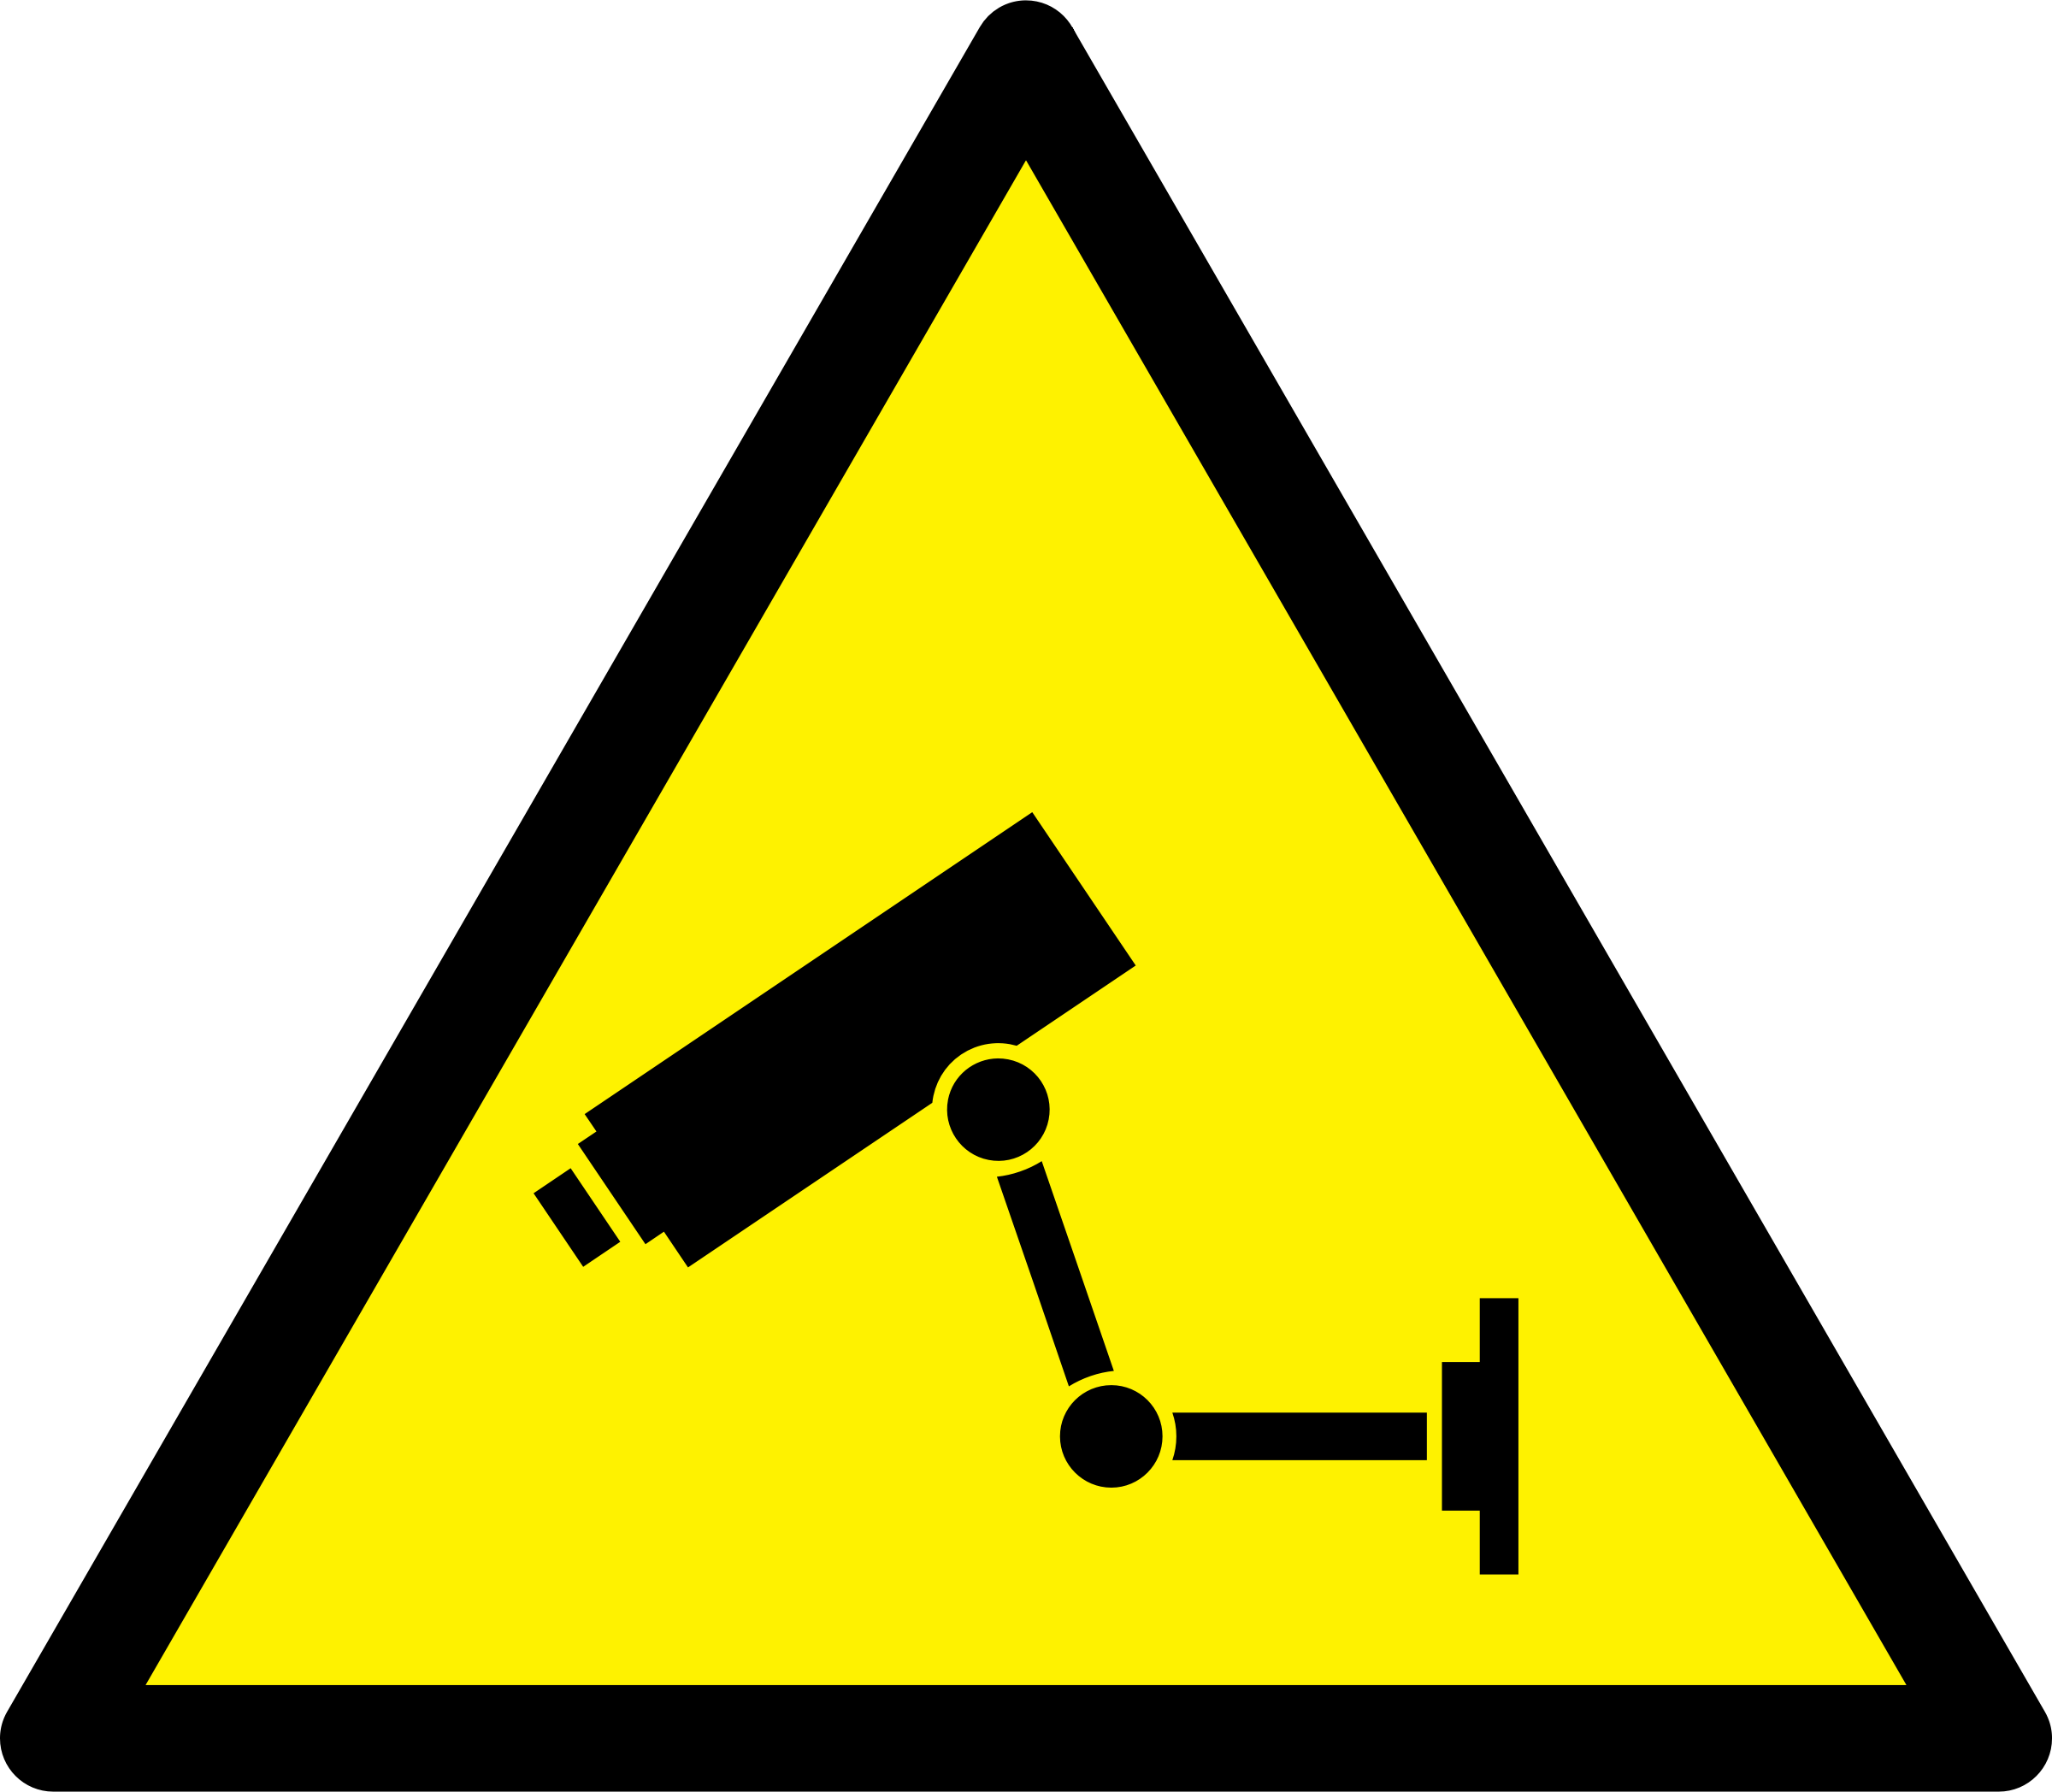 Cctv clipart security system #7